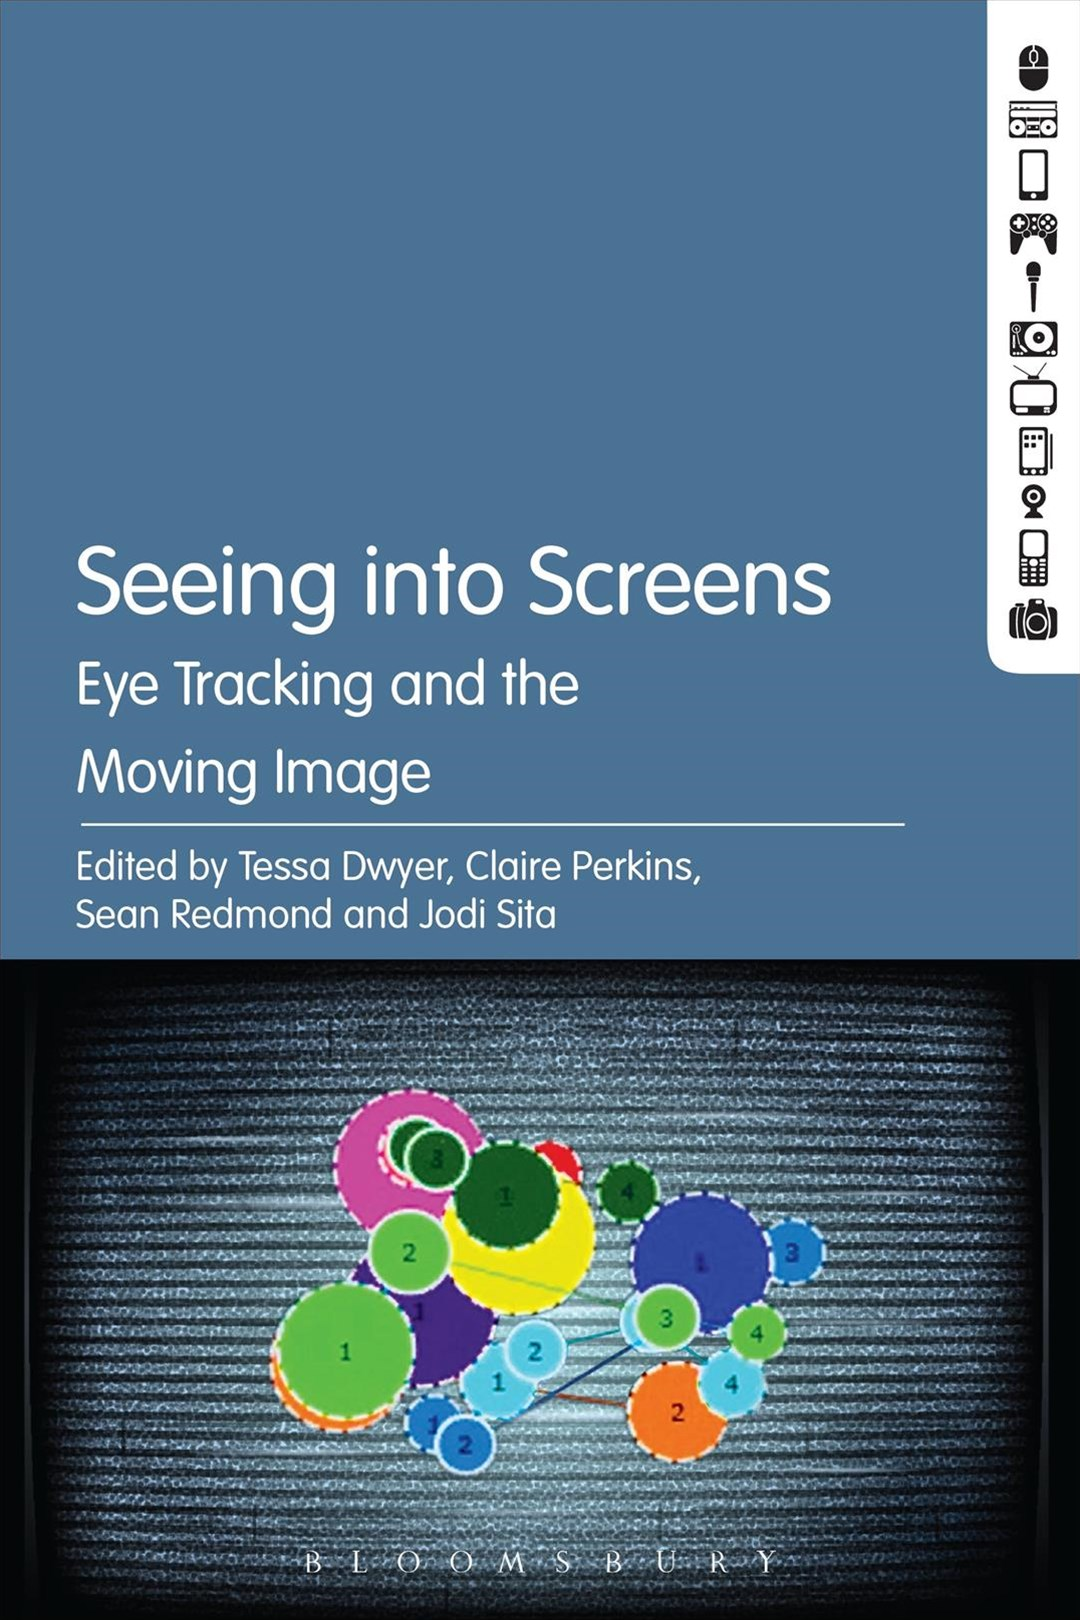 Seeing into Screens